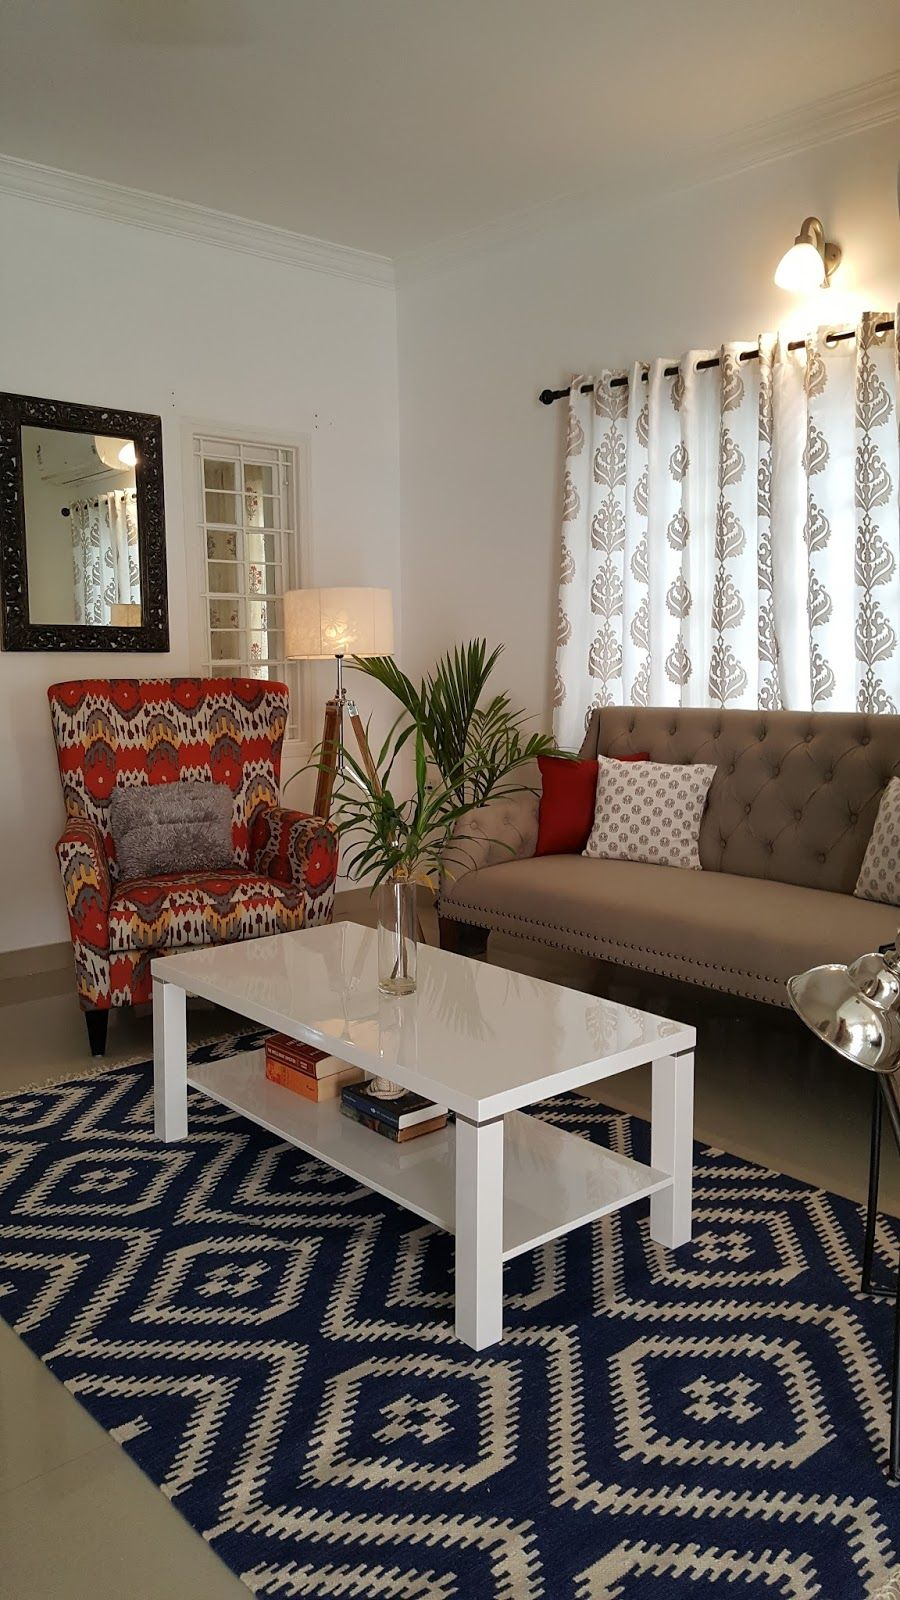 Living rooms homemade home decor interior designing styling house kerala kochi room also rh ar pinterest